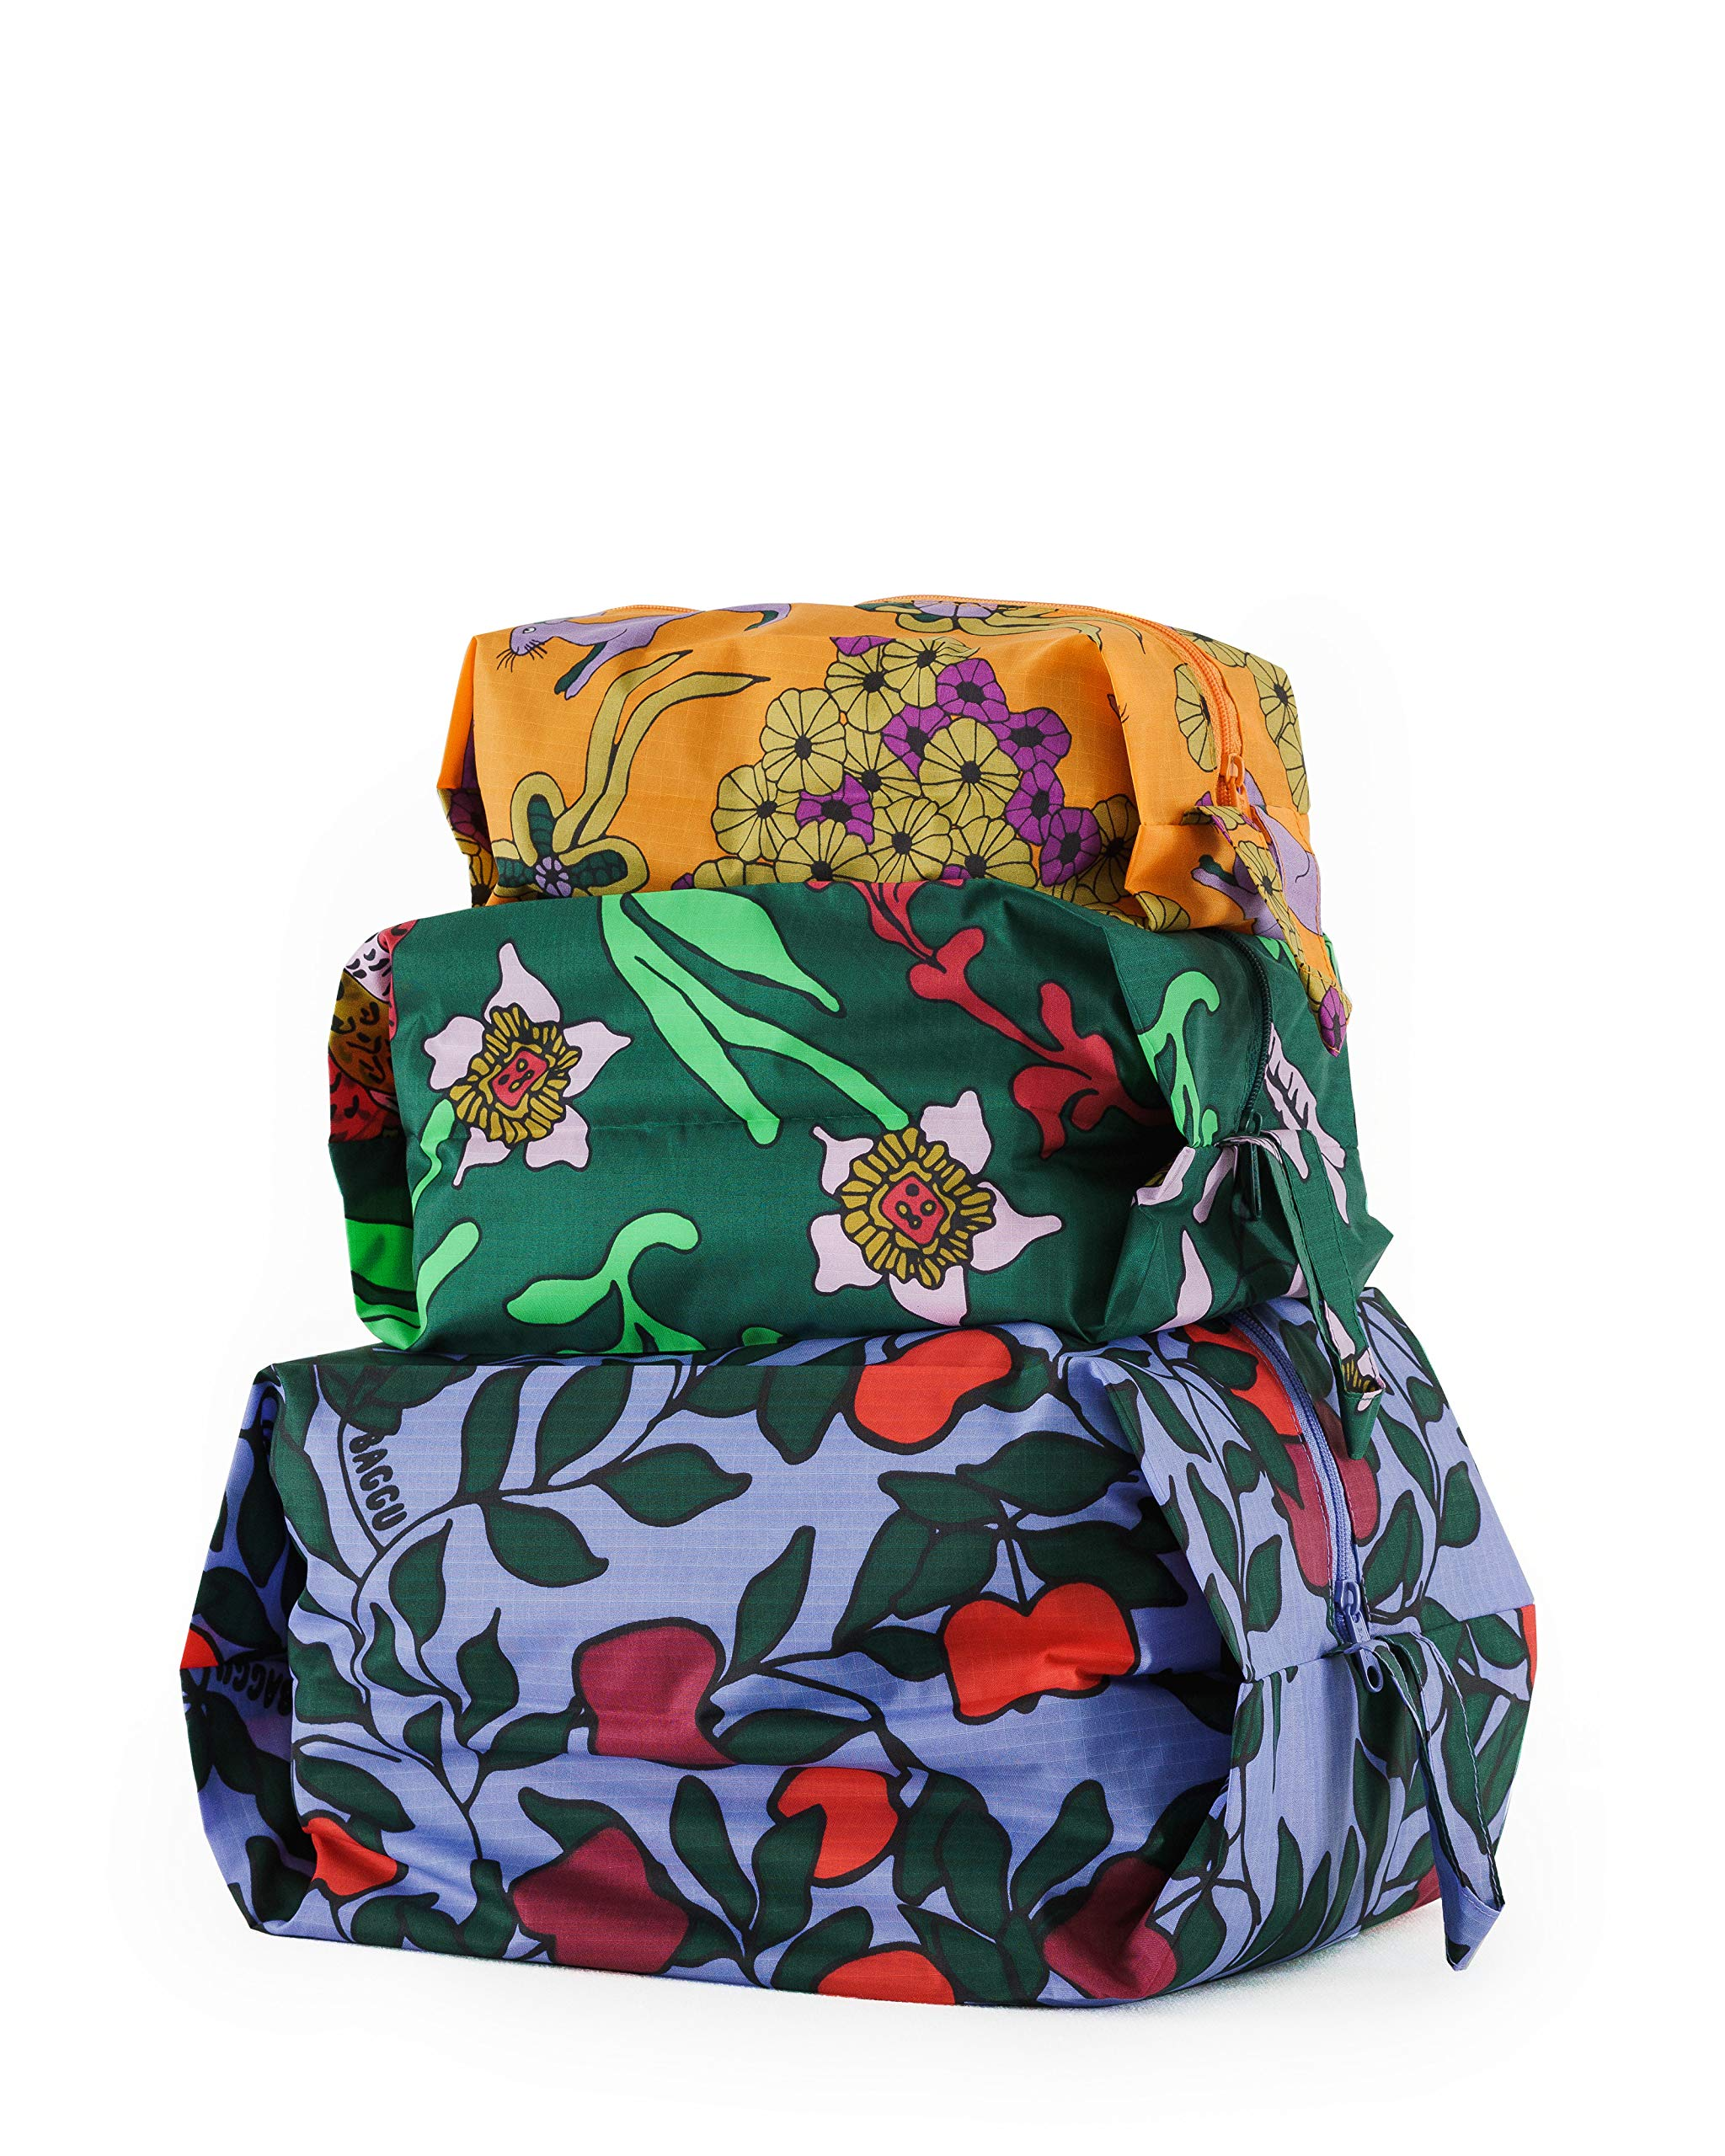 BAGGU 3D Zip Set, Expandable Nylon Zip Pouch 3 Pack For Travel And Organization, Floral Forest Set by BAGGU